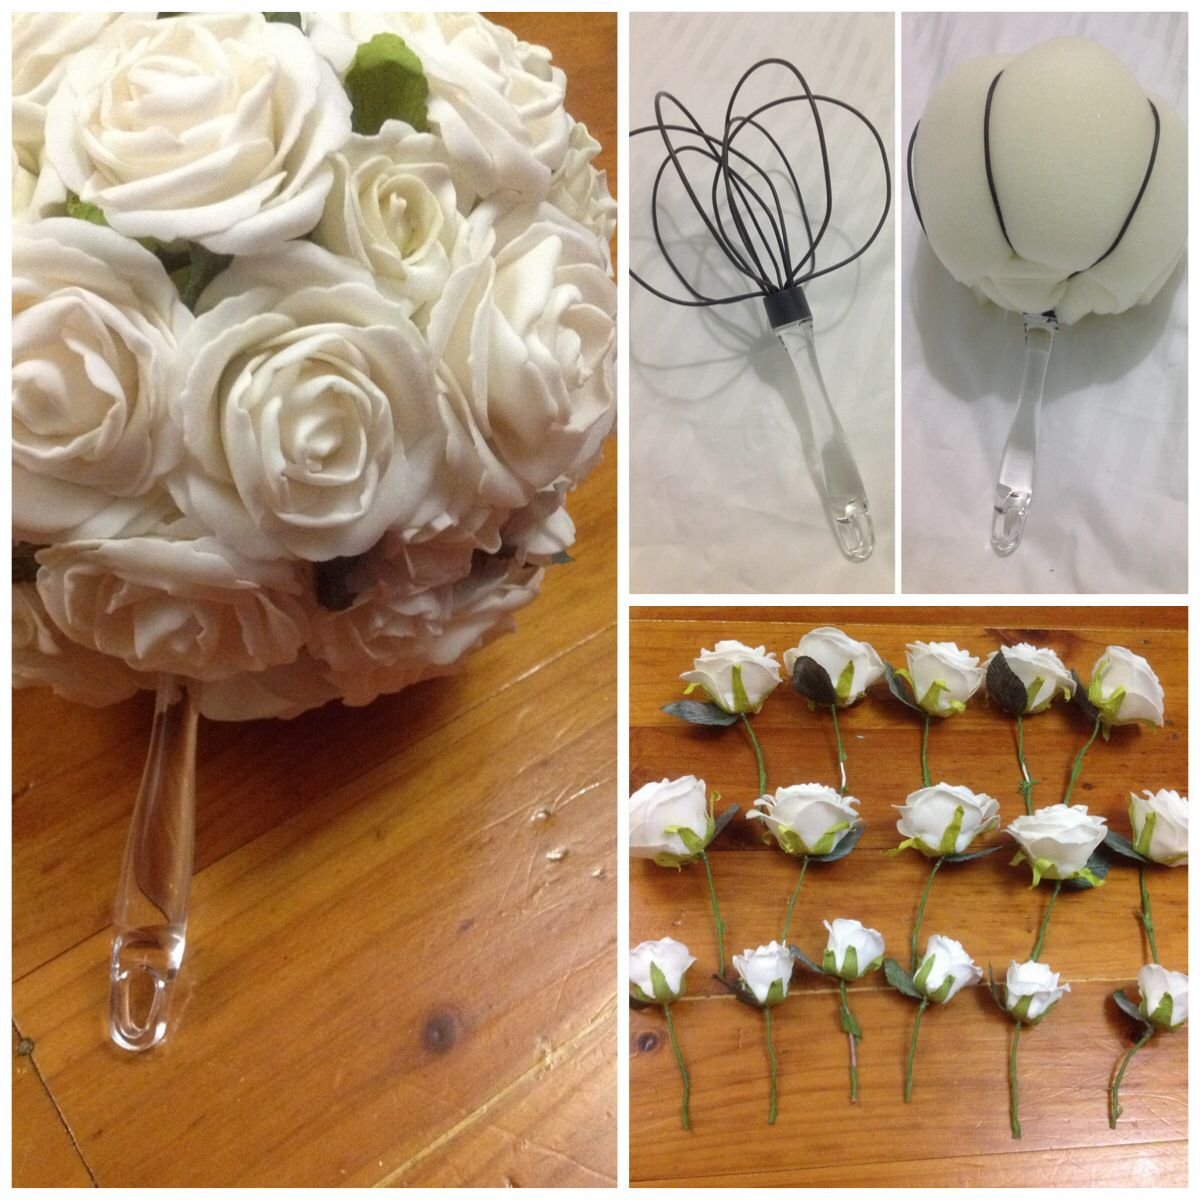 Handmade Bridal Bouquet Egg Beater 2 Kmart Foam Stuffing